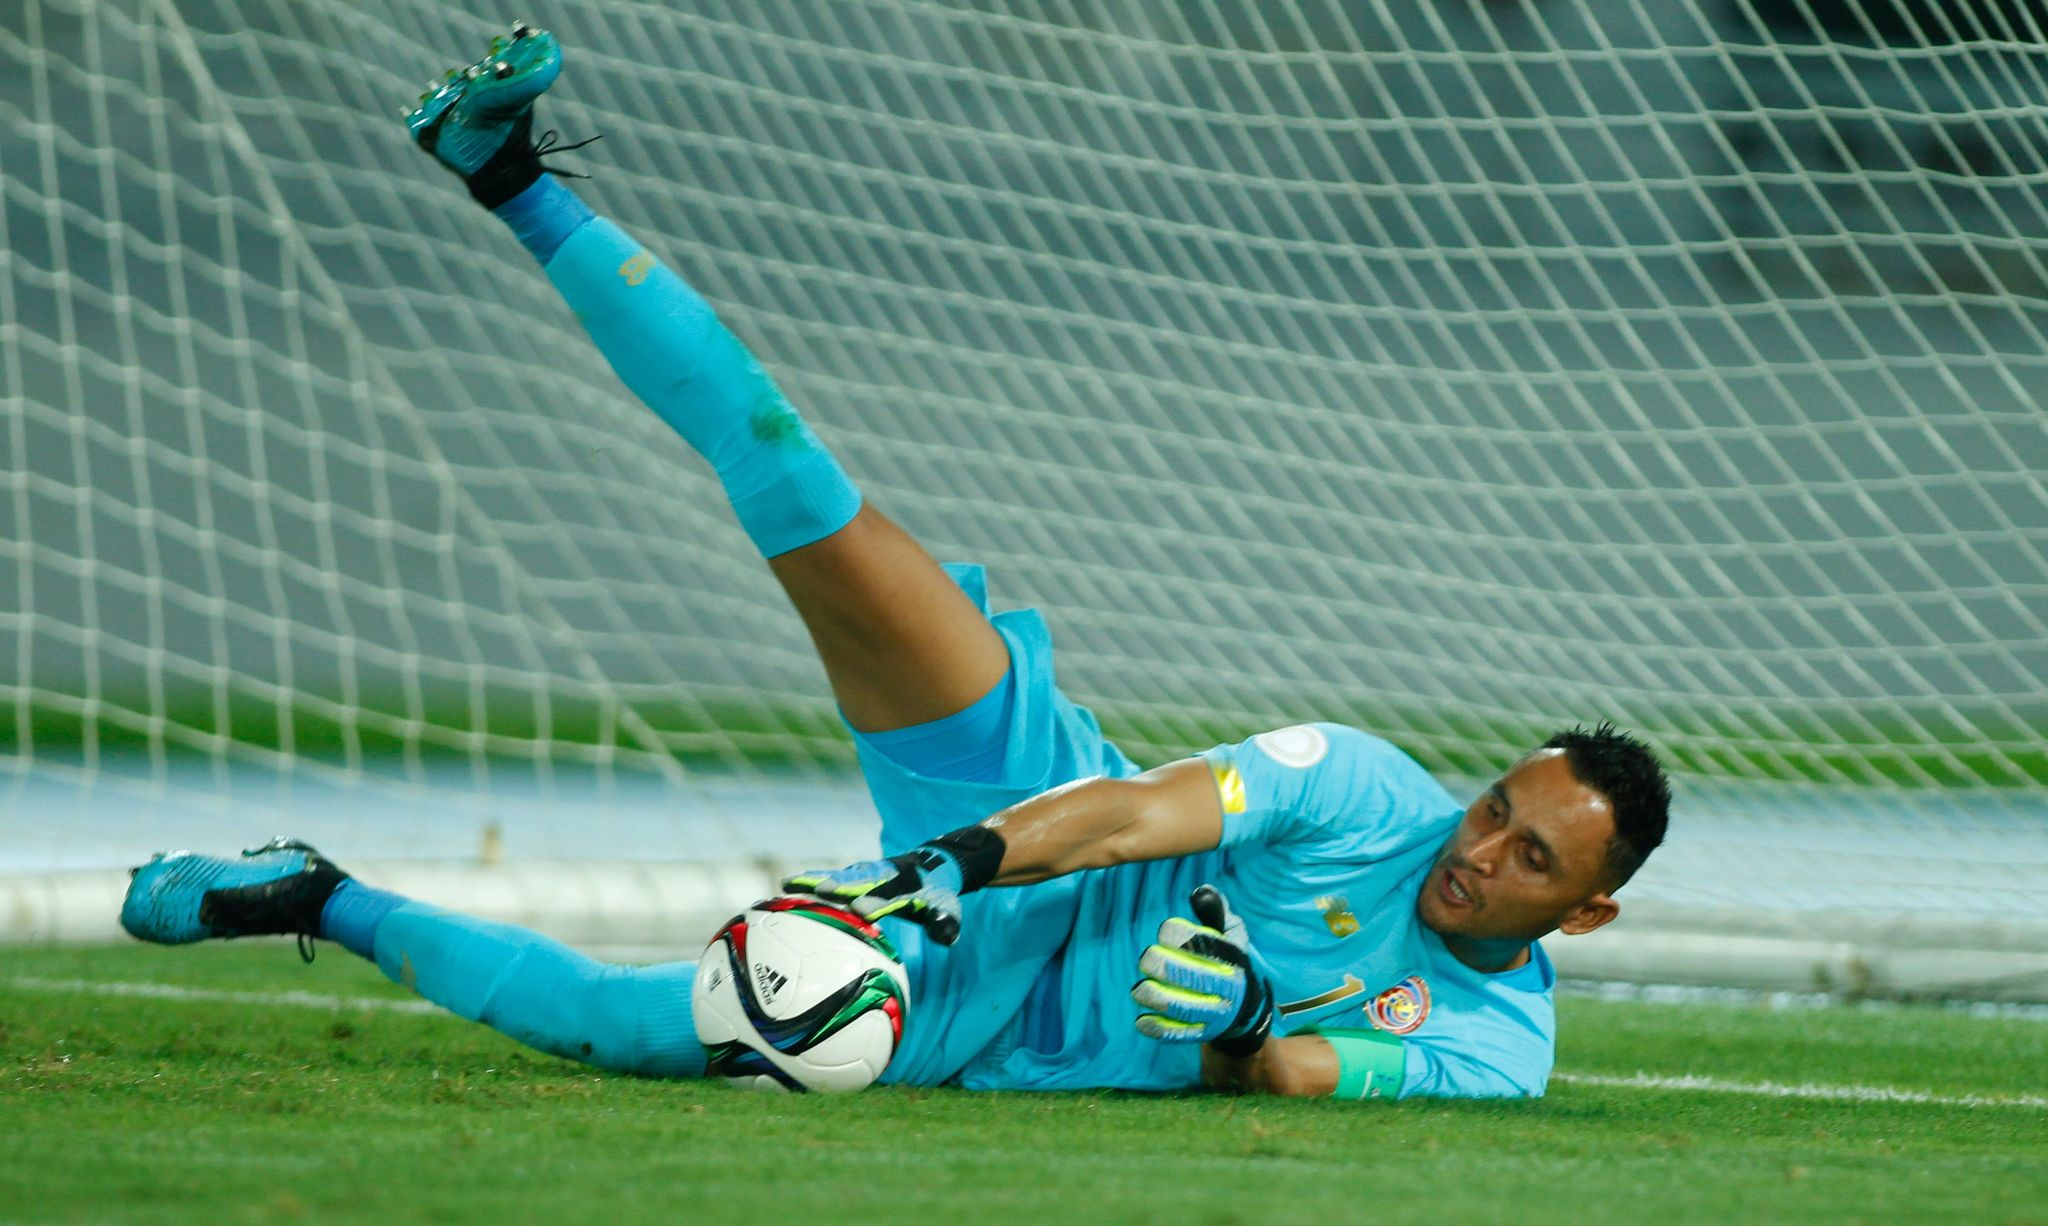 """This handout picture released by CONCACAF shows Costa Ricas goalkeeper <HIT>Keylor</HIT><HIT>Navas</HIT> during the Concacaf Nations League C tournament match between Costa Rica and Haiti in Nassau, Bahamas on October 10, 2019. (Photo by Andrew Innerarity / CONCACAF / AFP) / RESTRICTED TO EDITORIAL USE - MANDATORY CREDIT """"AFP PHOTO /CONCACAF - Andrew Innerarity"""" - NO MARKETING NO ADVERTISING CAMPAIGNS - DISTRIBUTED AS A SERVICE TO CLIENTS ---"""